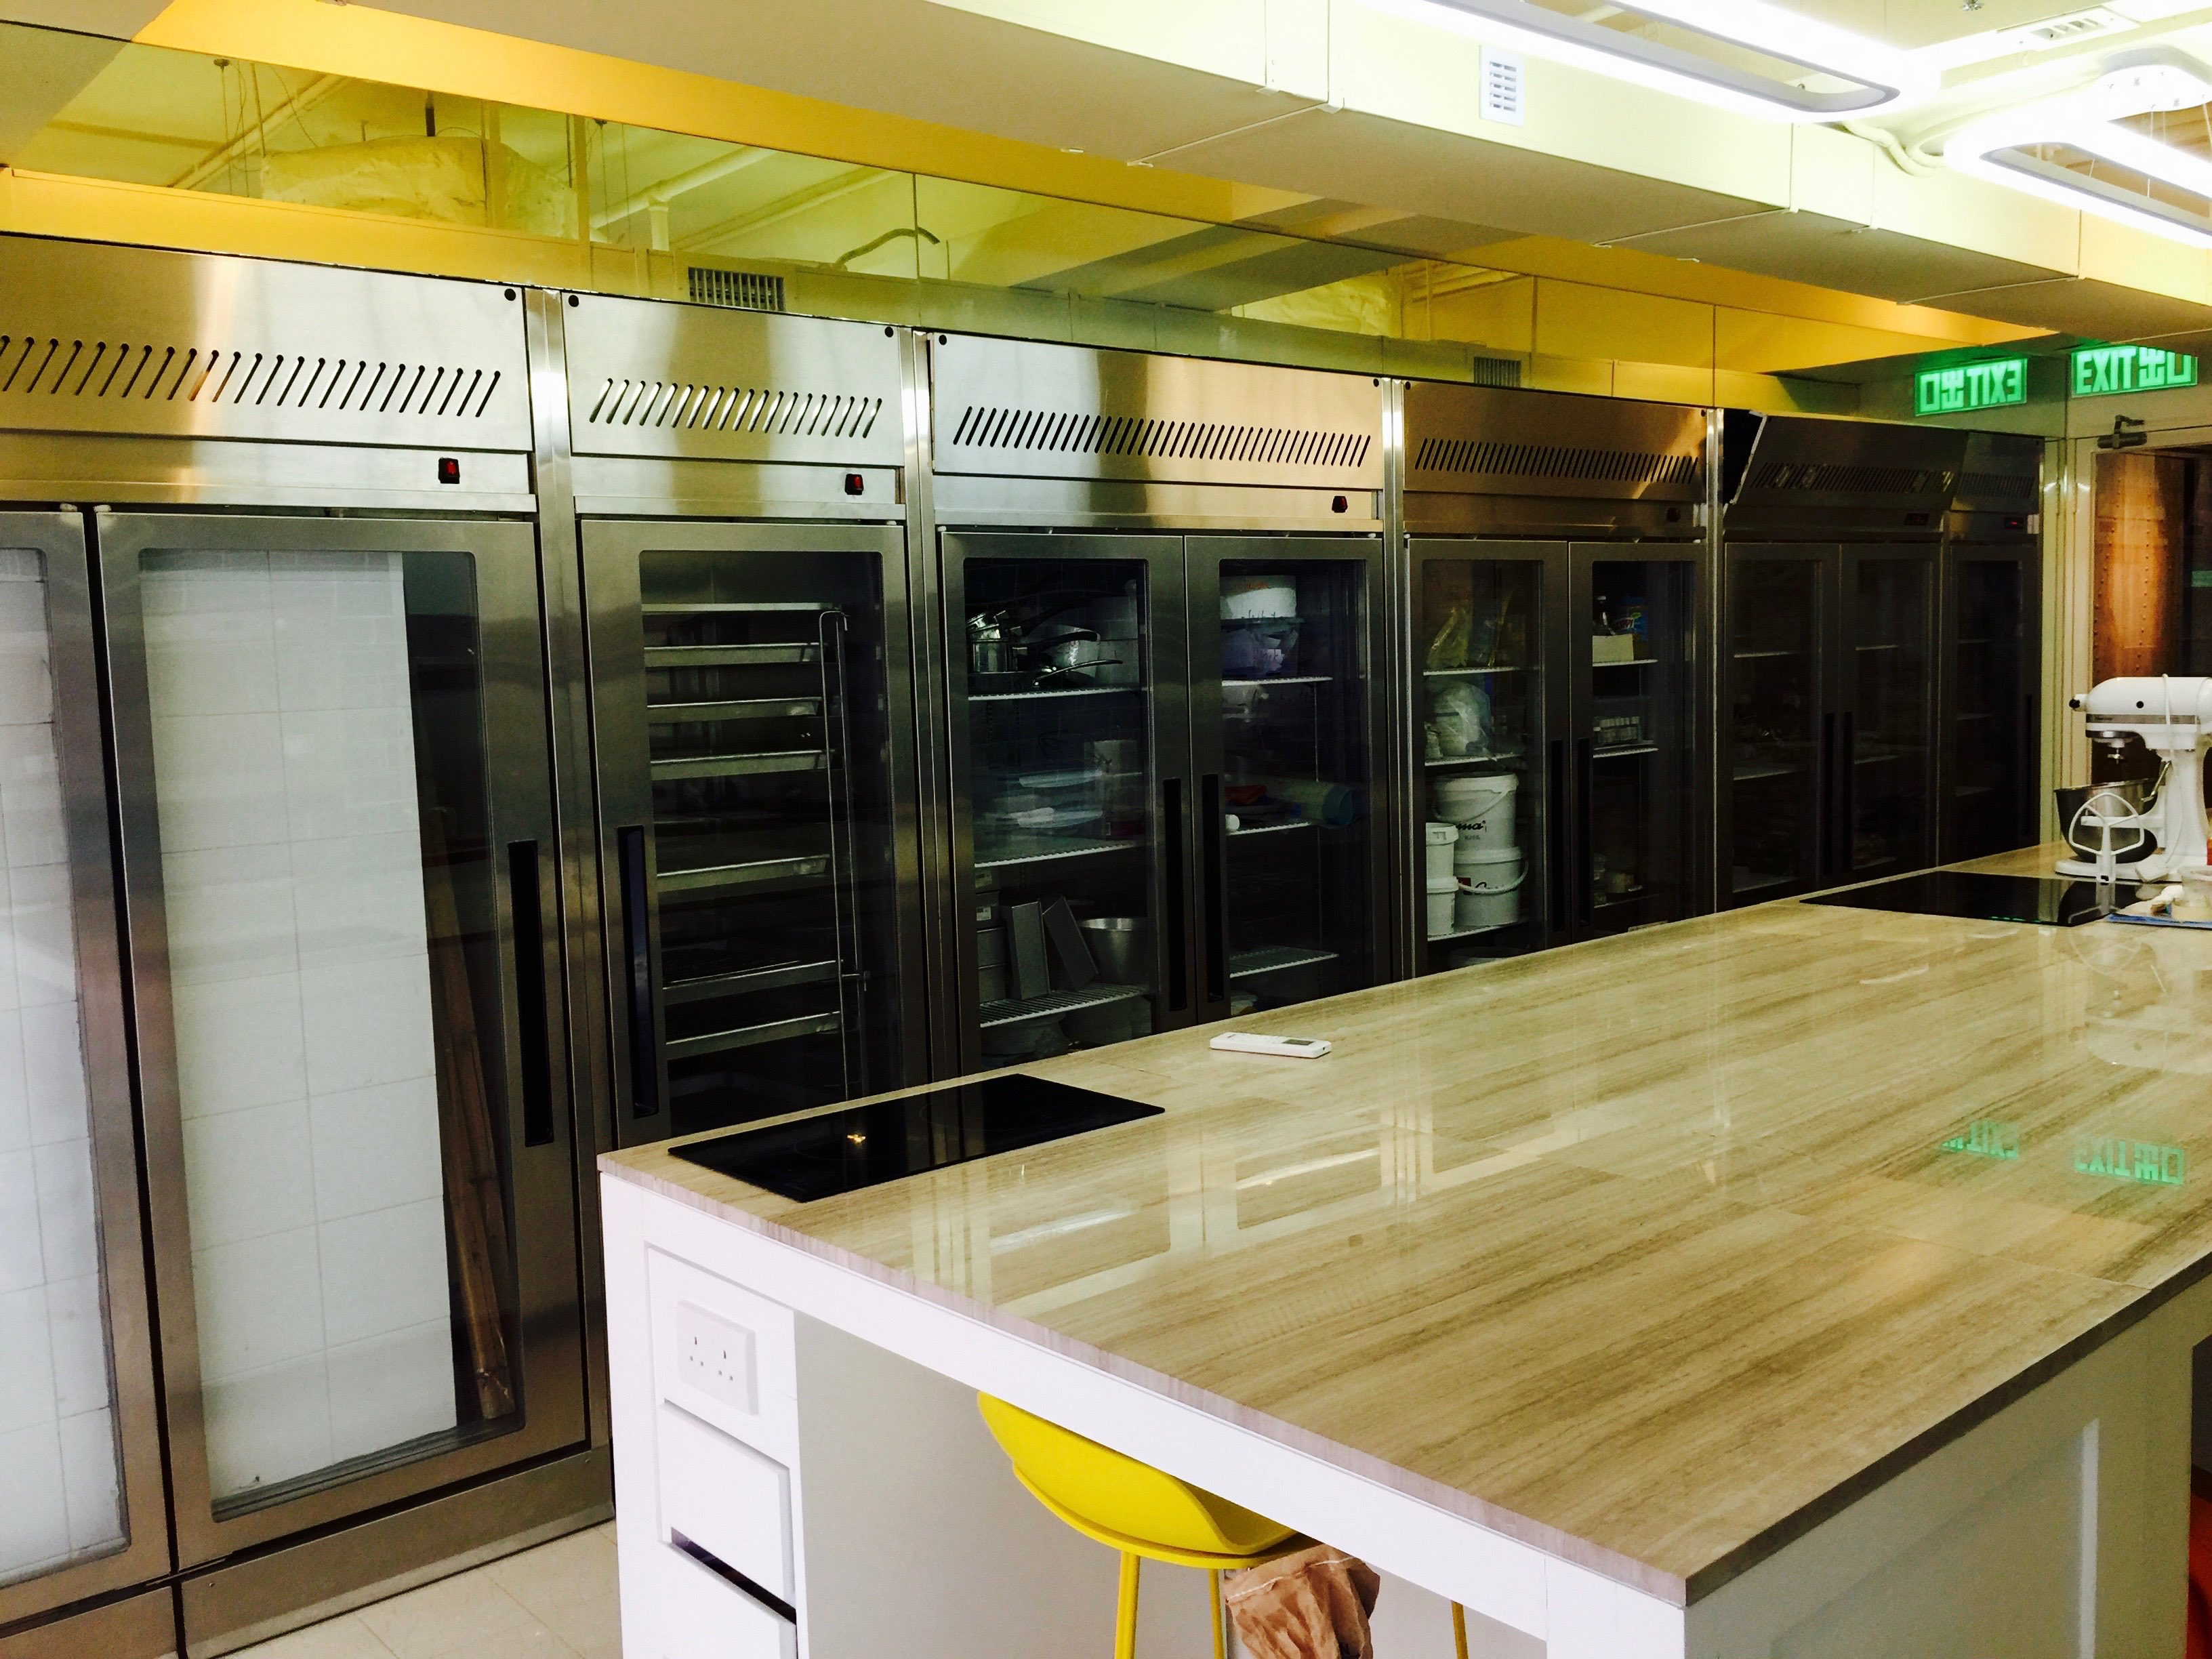 ... Central Kitchen For Sale With Lease And Food Factory Licence In Kowloon  Hong Kong ...